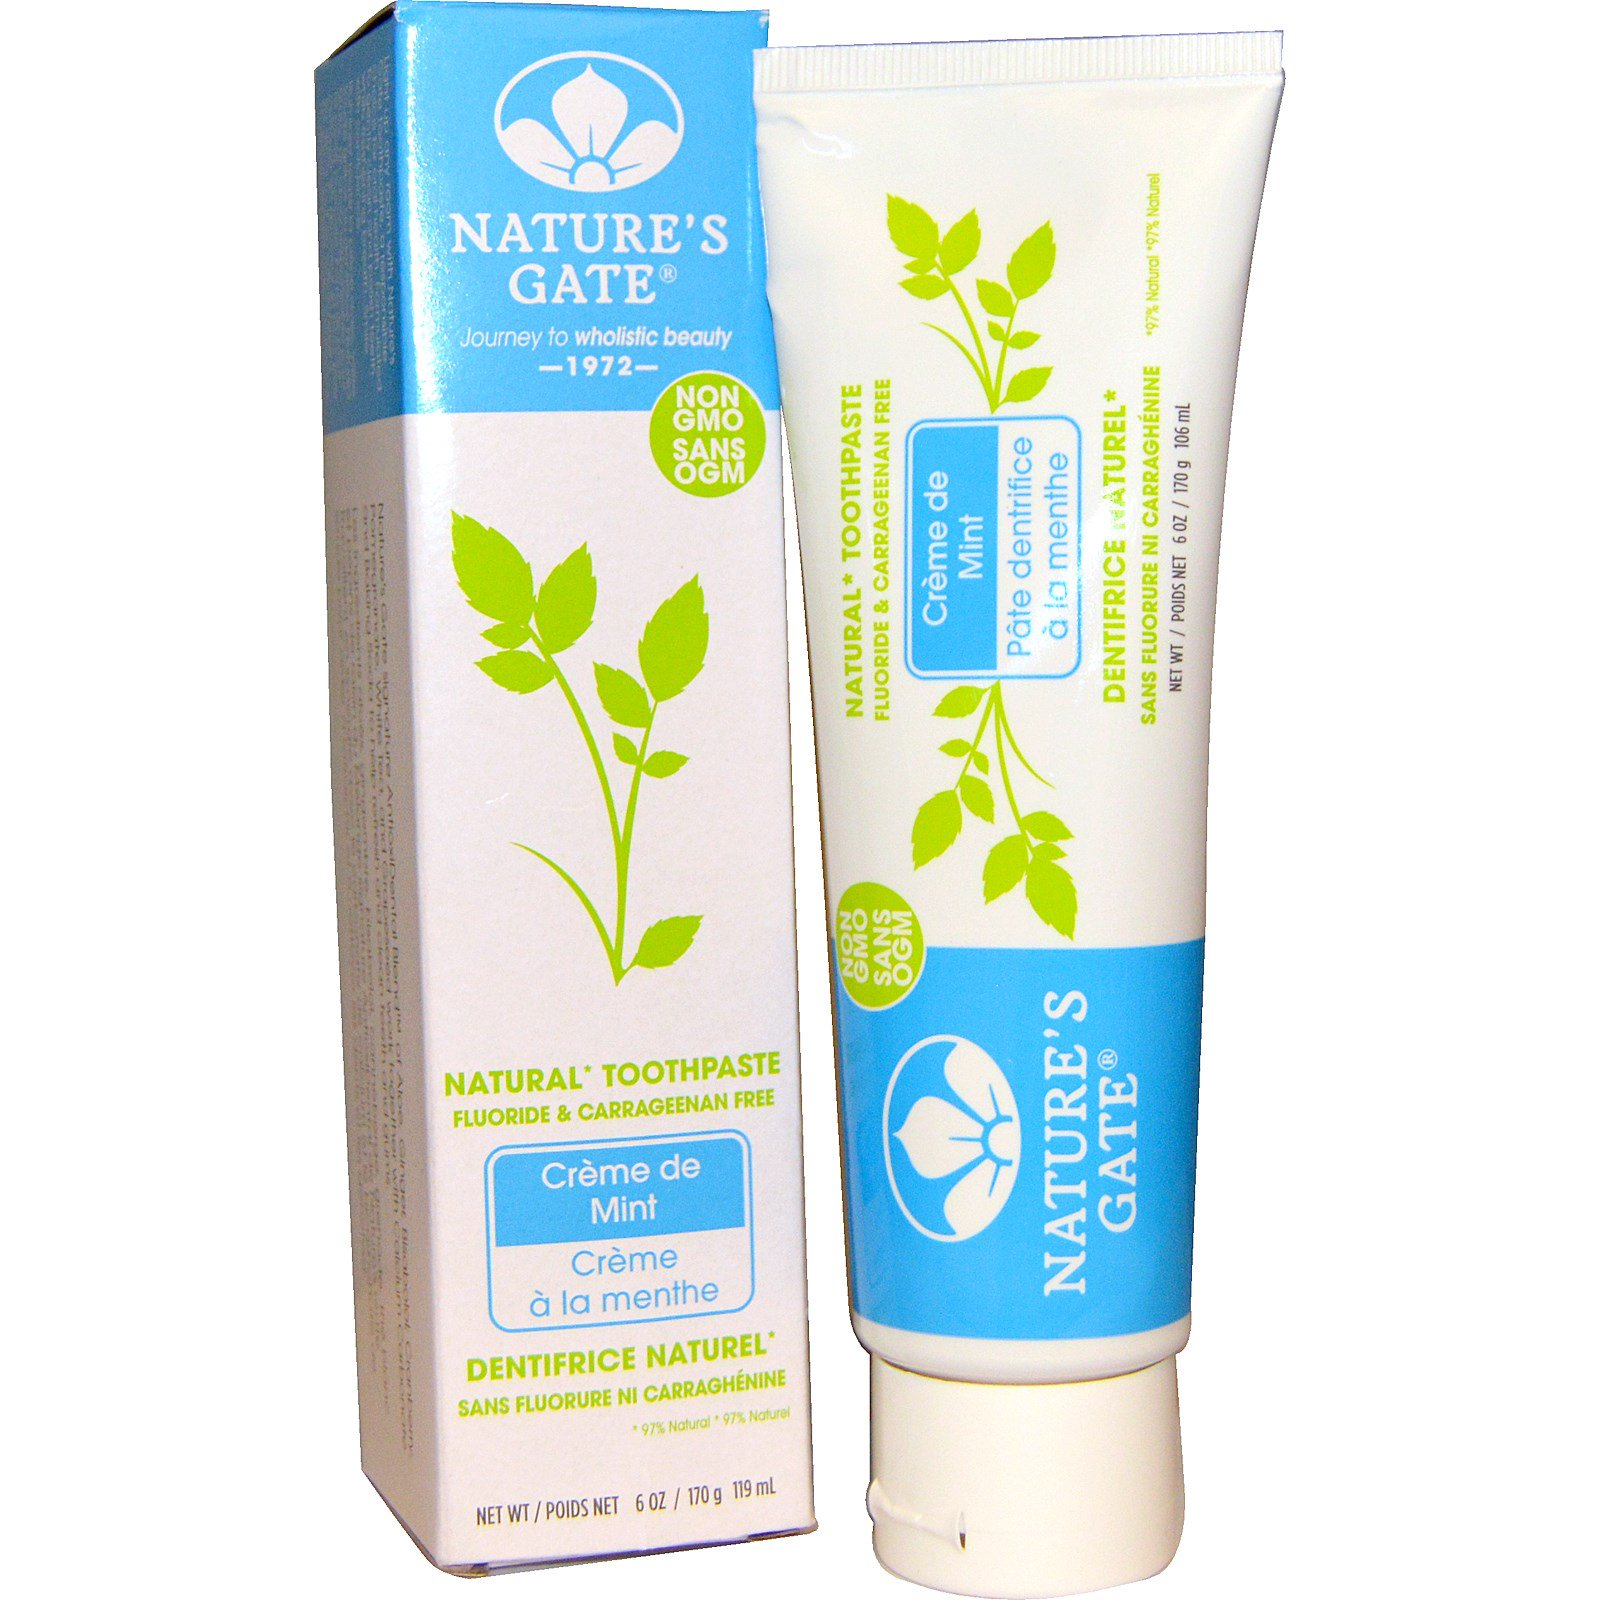 Natural toothpaste without carrageenan